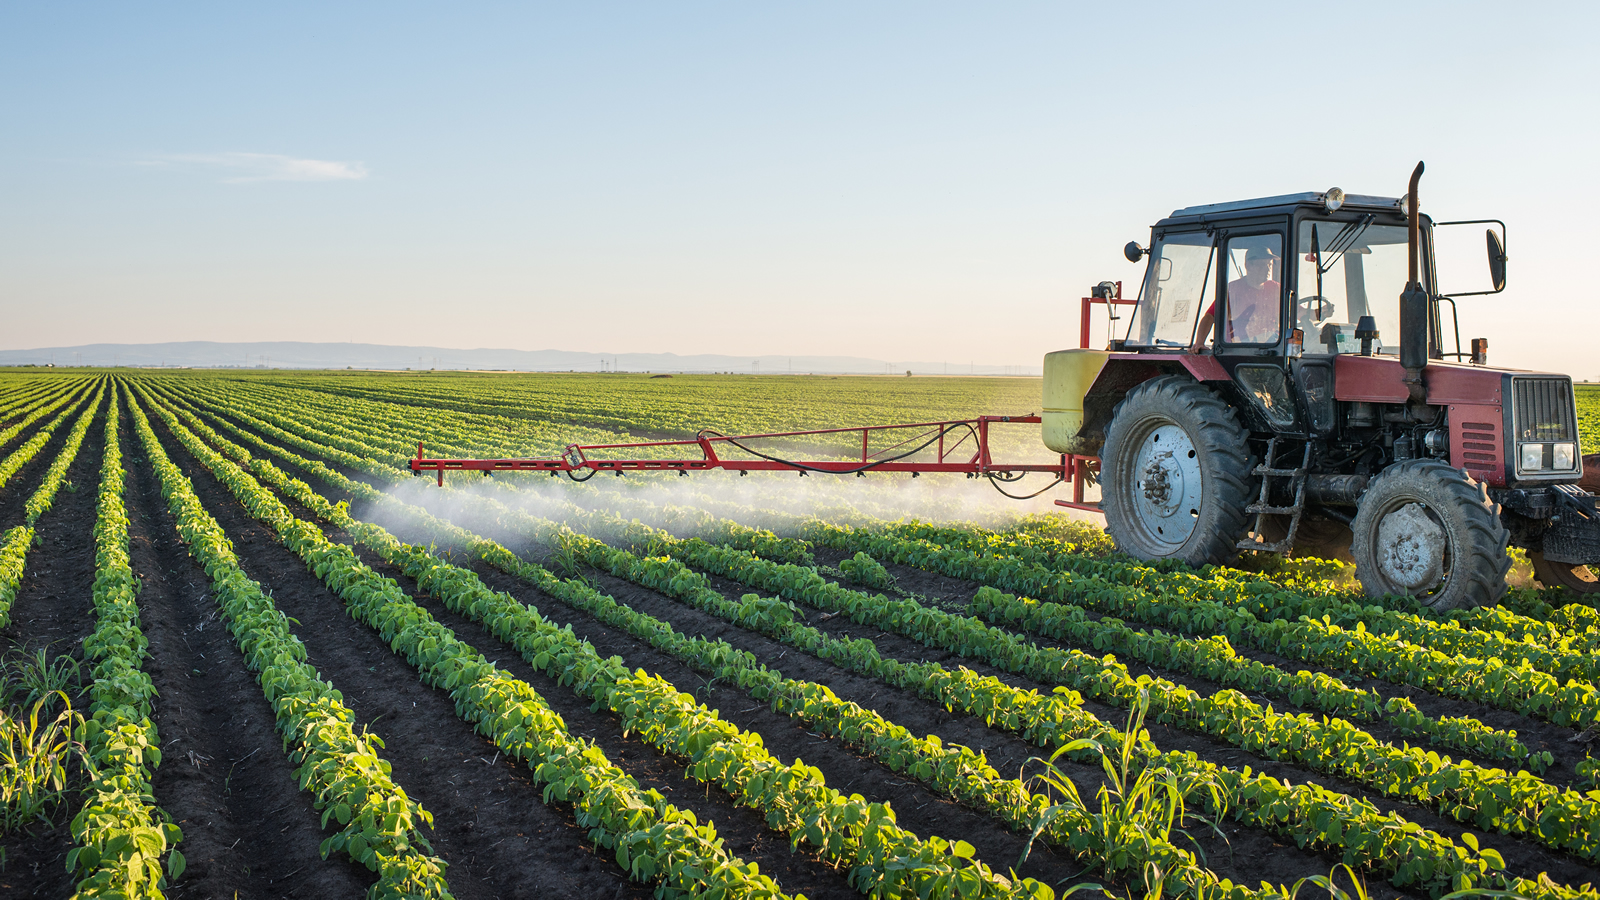 <h4>Ban Roundup</h4><p>Glyphosate, the main ingredient in Roundup, is the most commonly used pesticide in the country. Recently, the cancer research agency at the World Health Organization determined that glyphosate is a probable carcinogen. We're working to ban Roundup unless and until it's proven safe.</p><em>Fotokostic via Shutterstock</em>